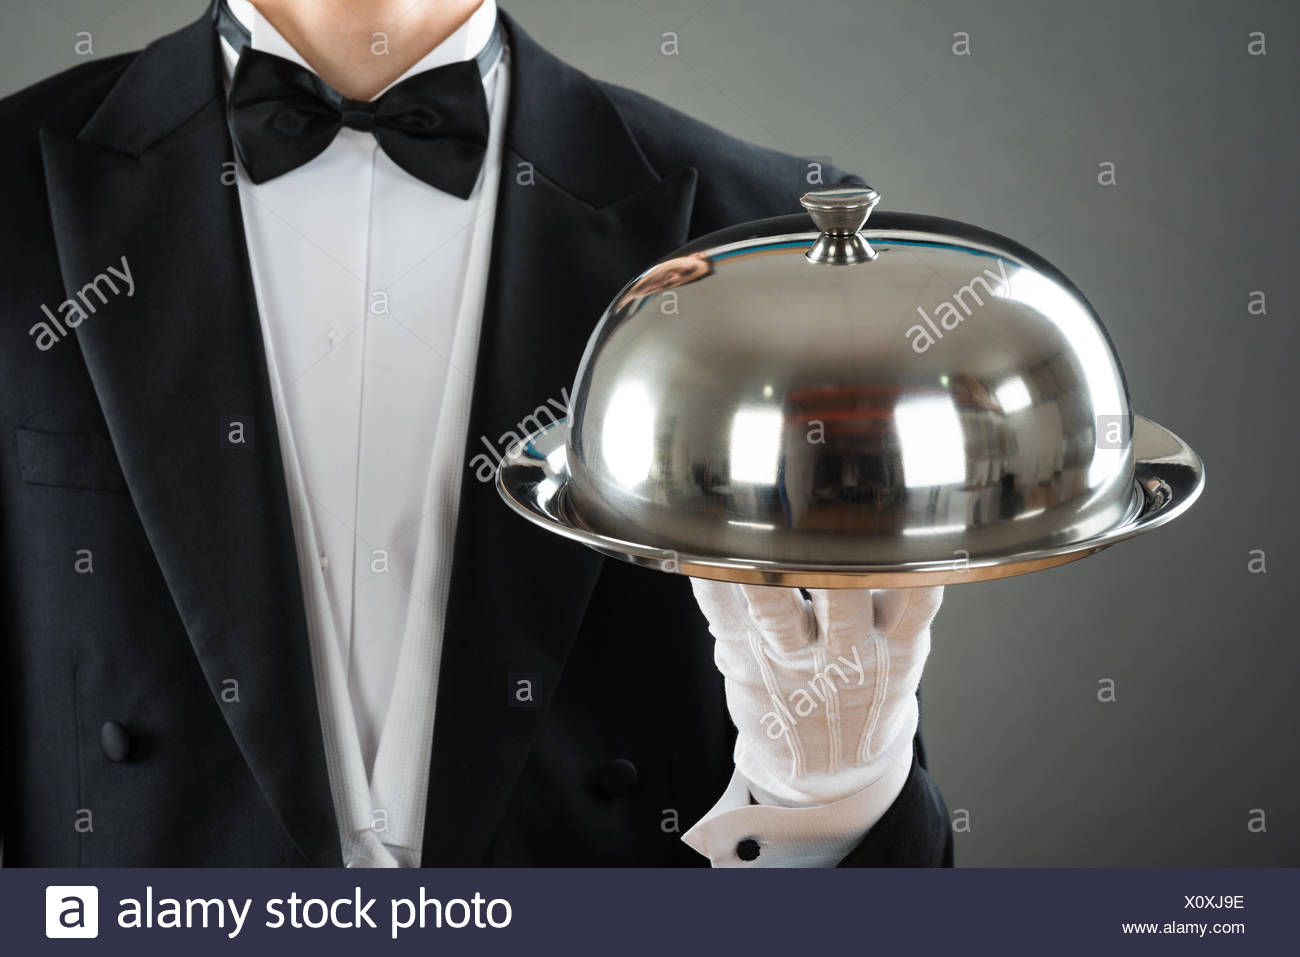 Midsection Of Waiter Holding Tray With Cloche - Stock Image